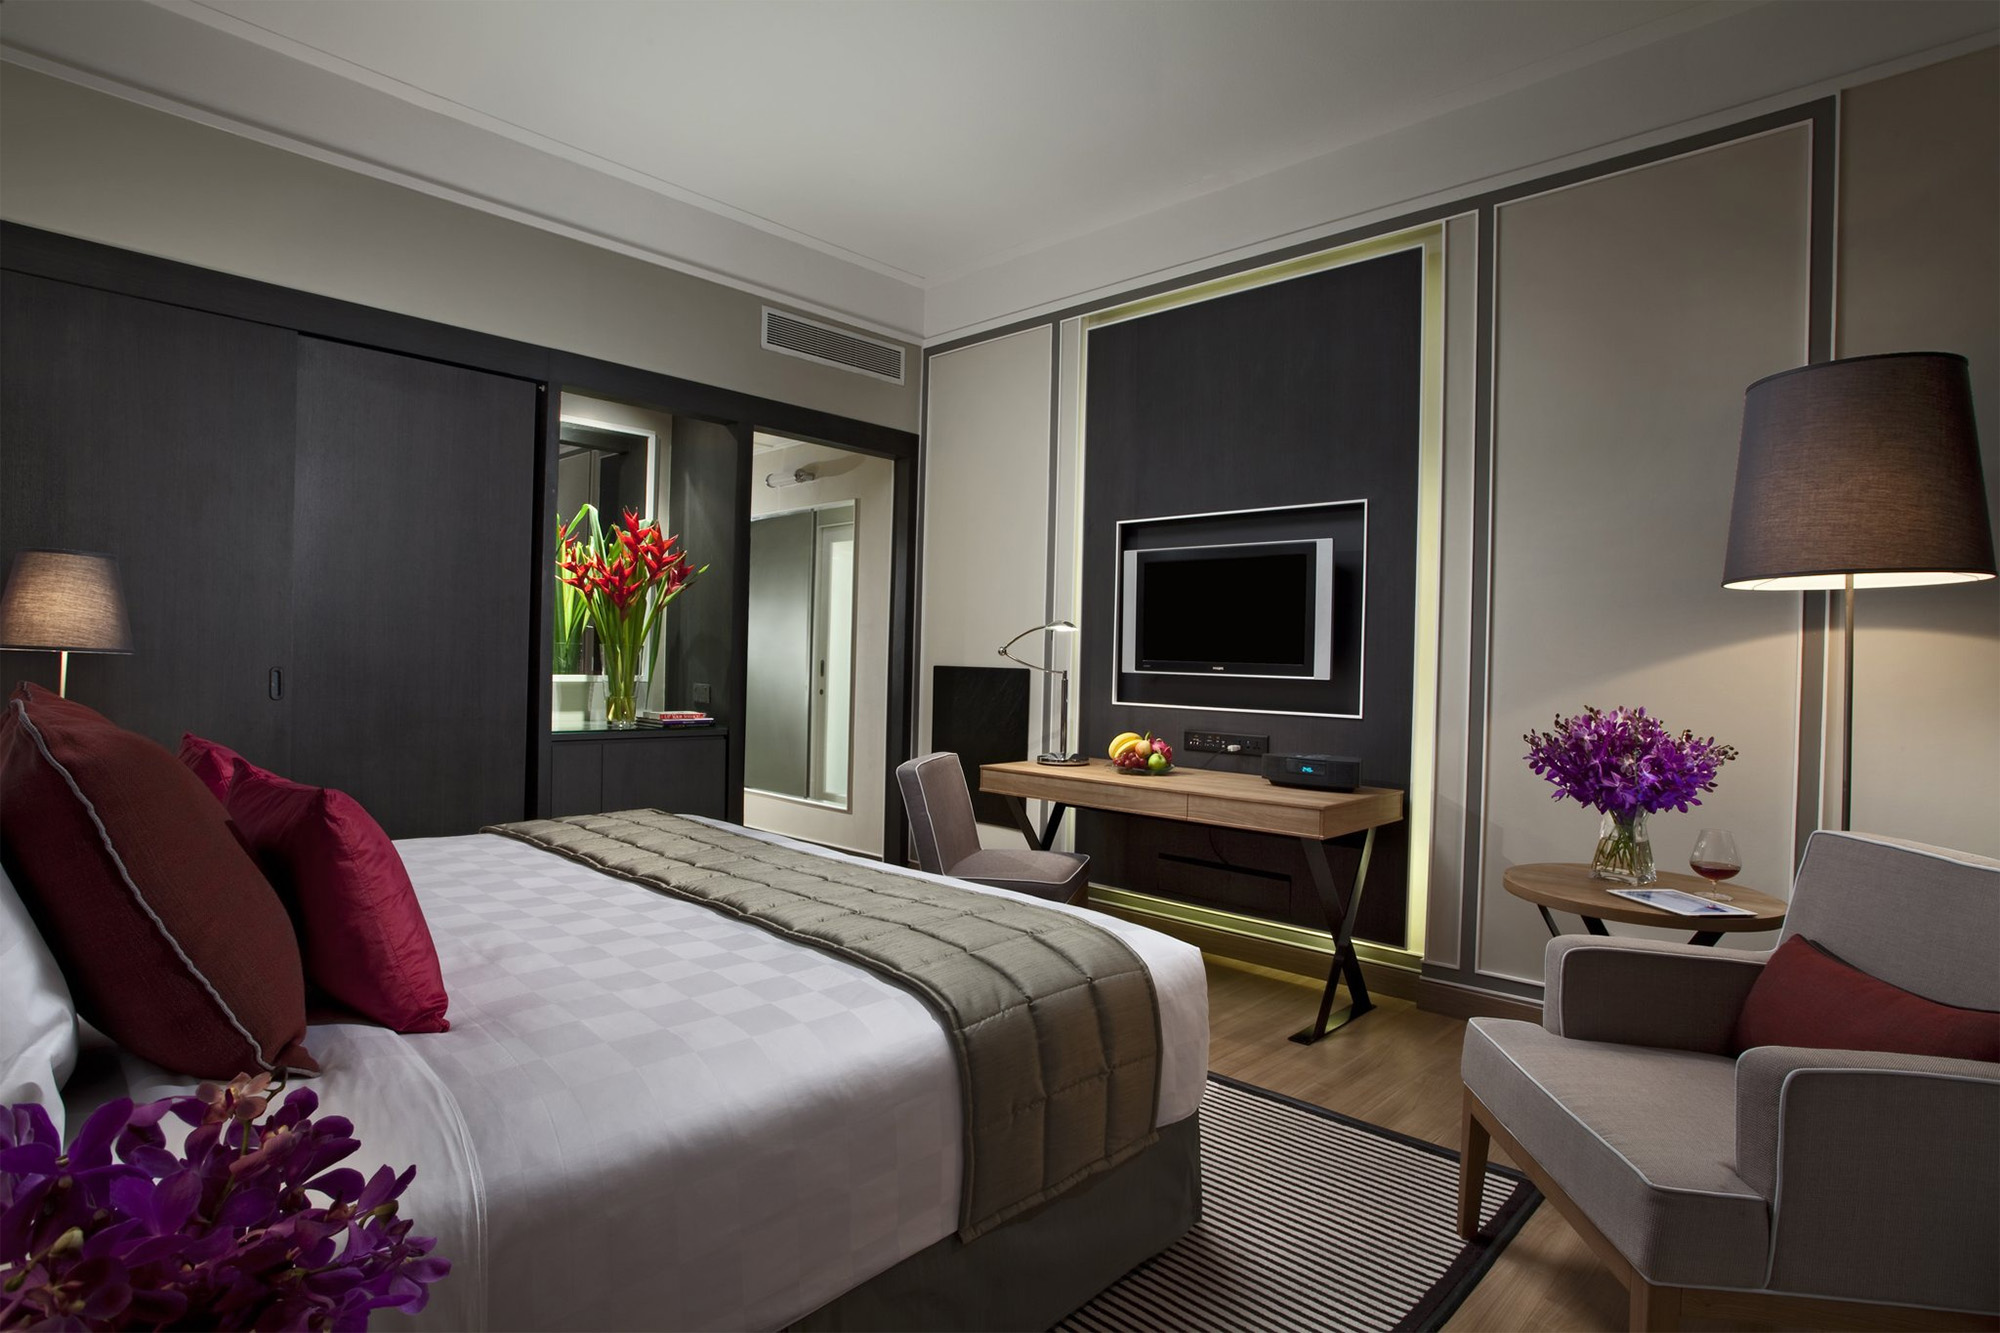 Orchard Hotel Room